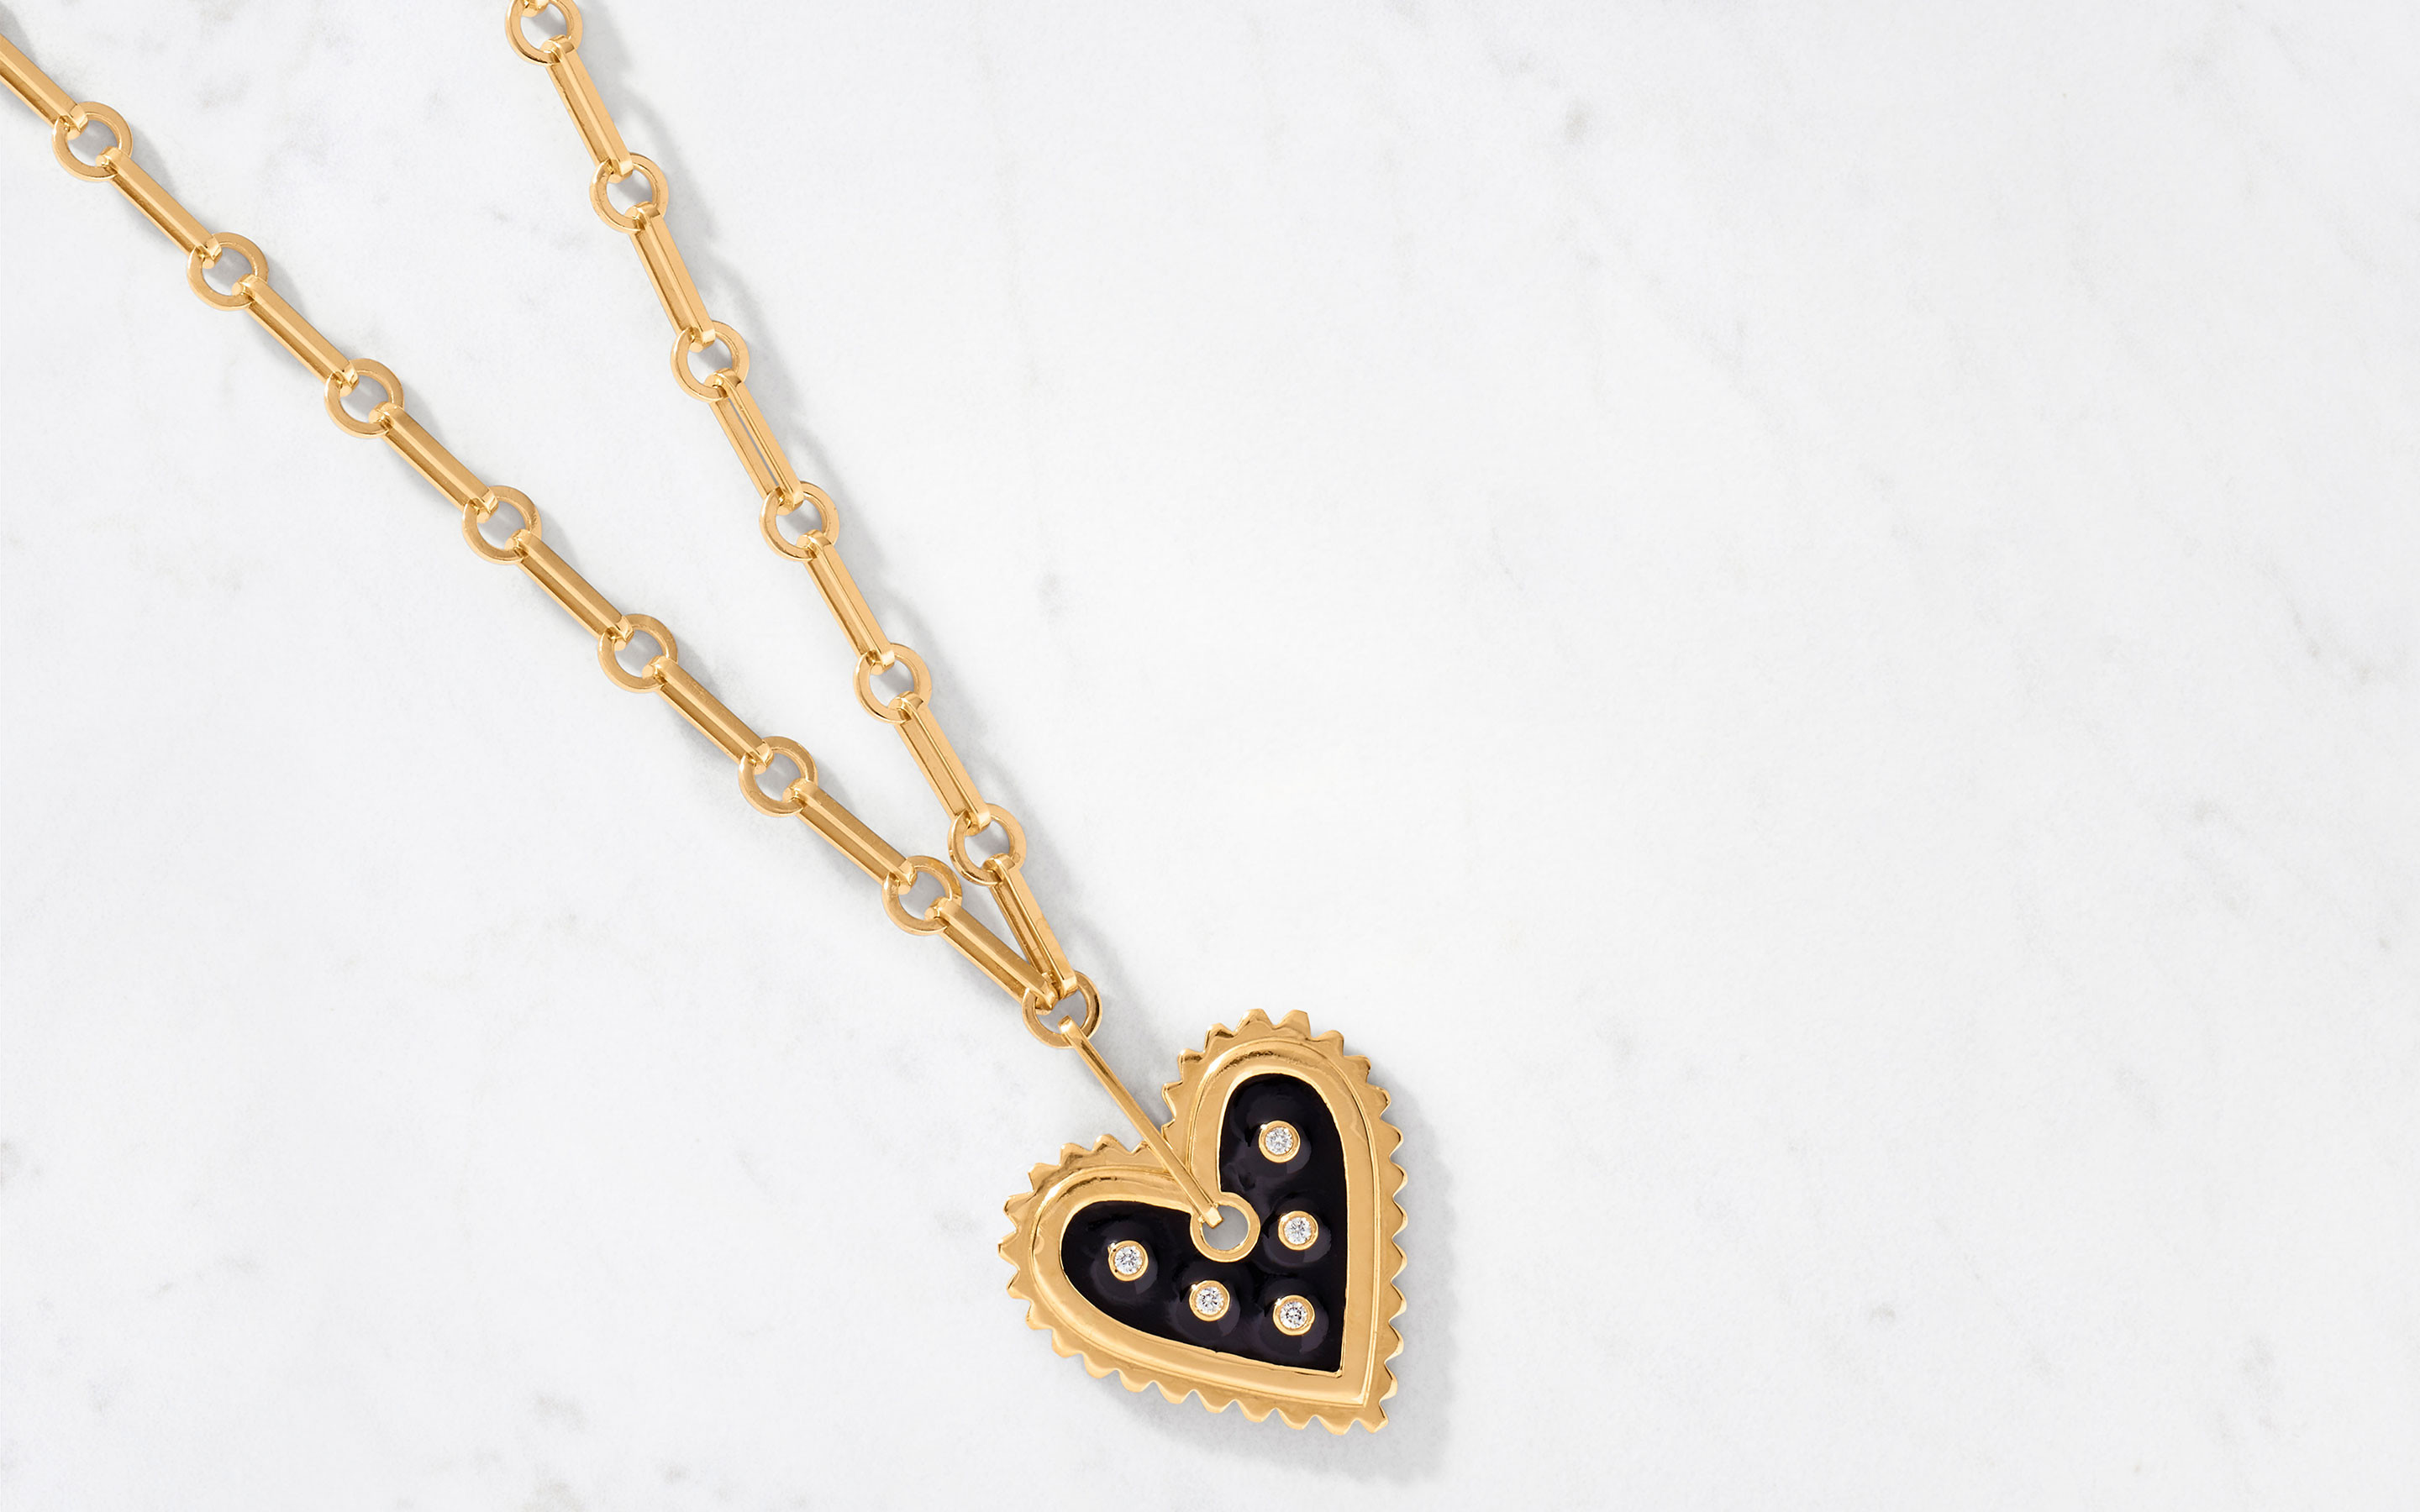 modish 22 karat gold necklace with heart pendant and diamonds